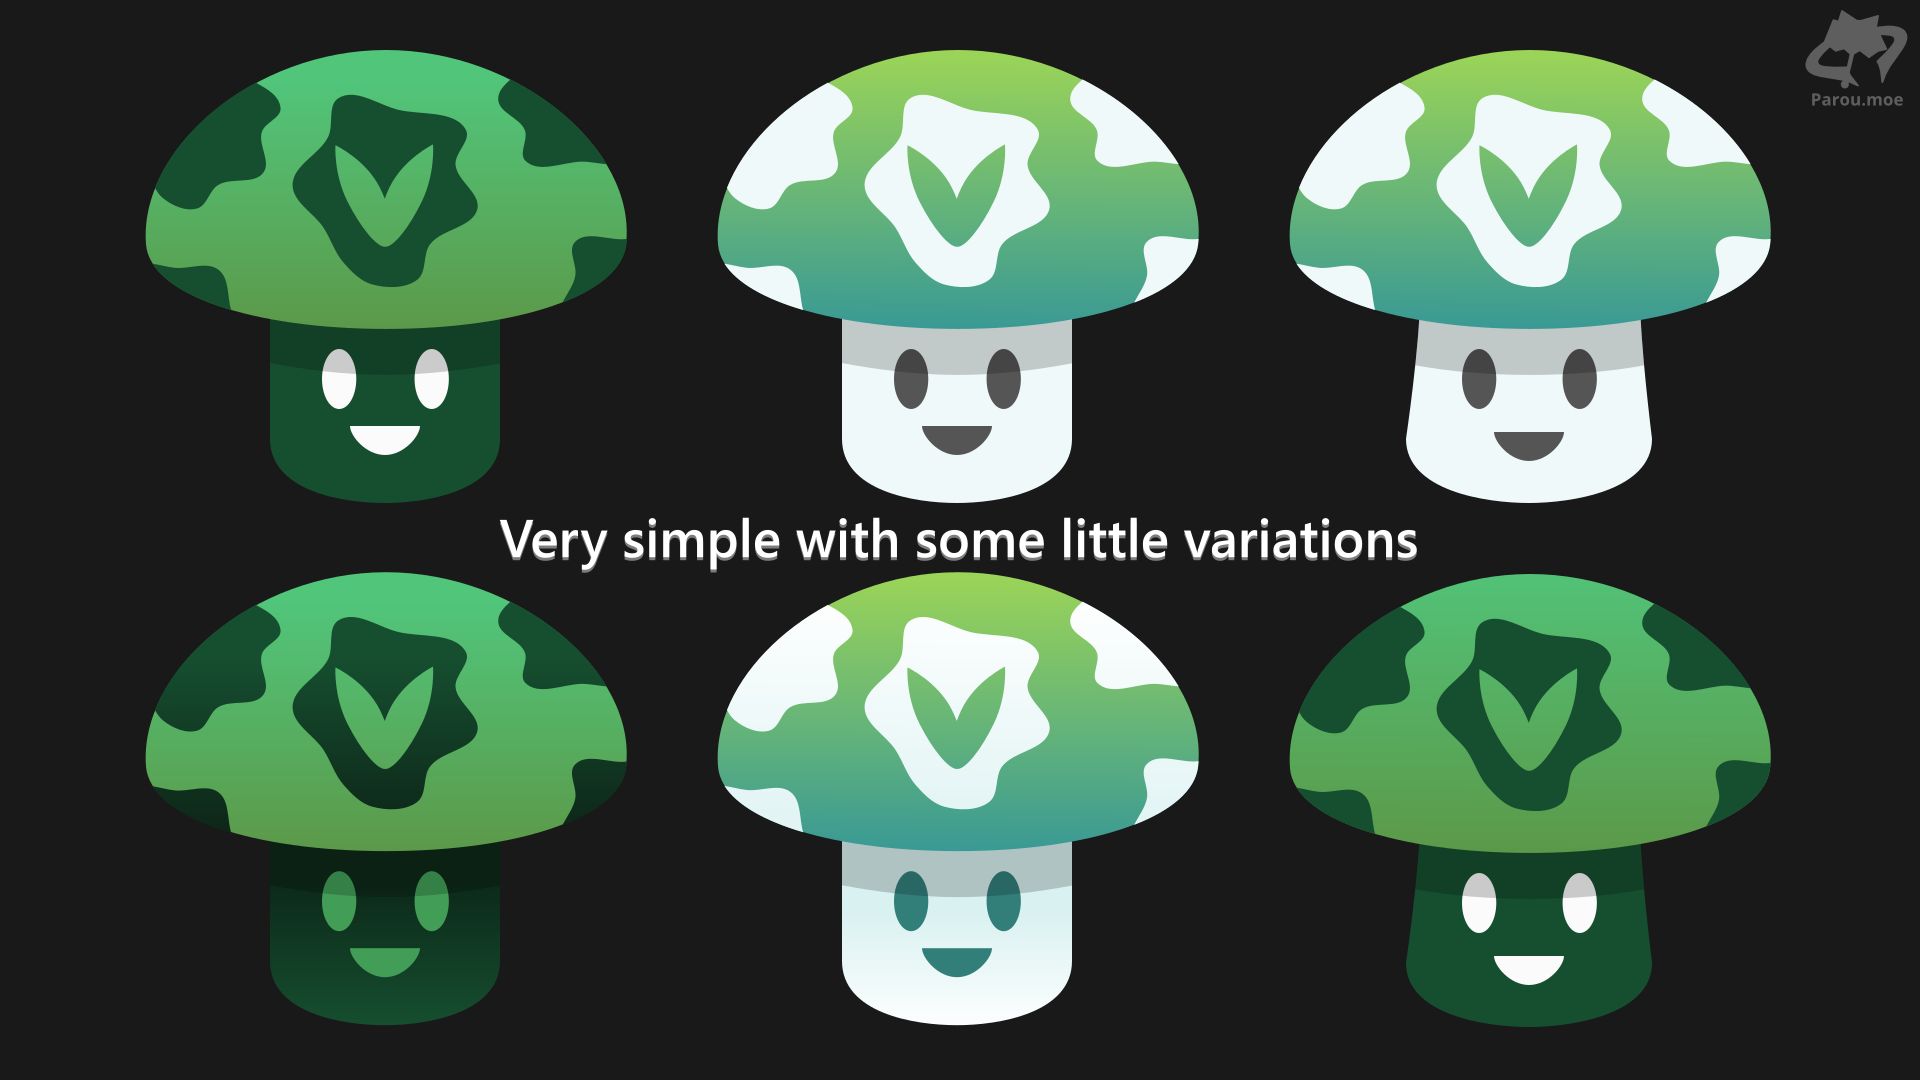 Vineshroom Redesign (Vinesauce)